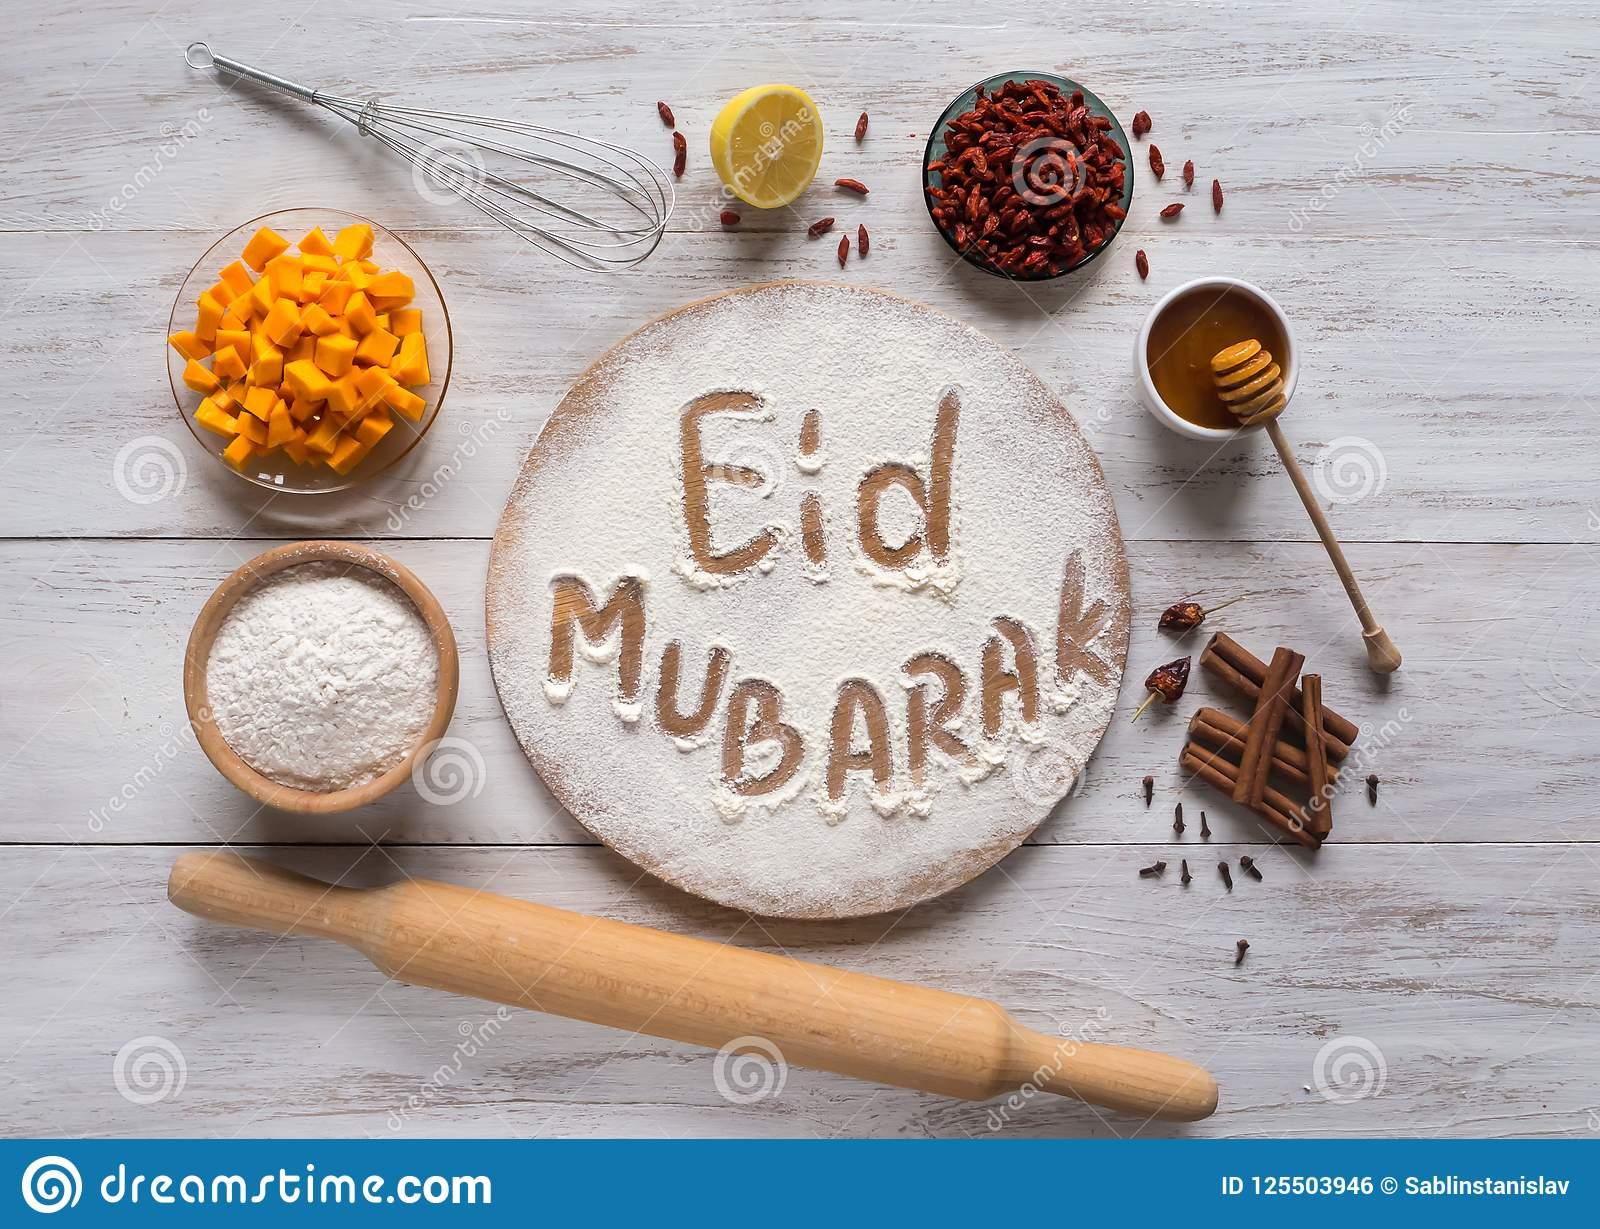 Eid Mubarak - Islamic Holiday Welcome Phrase ` Happy Holiday